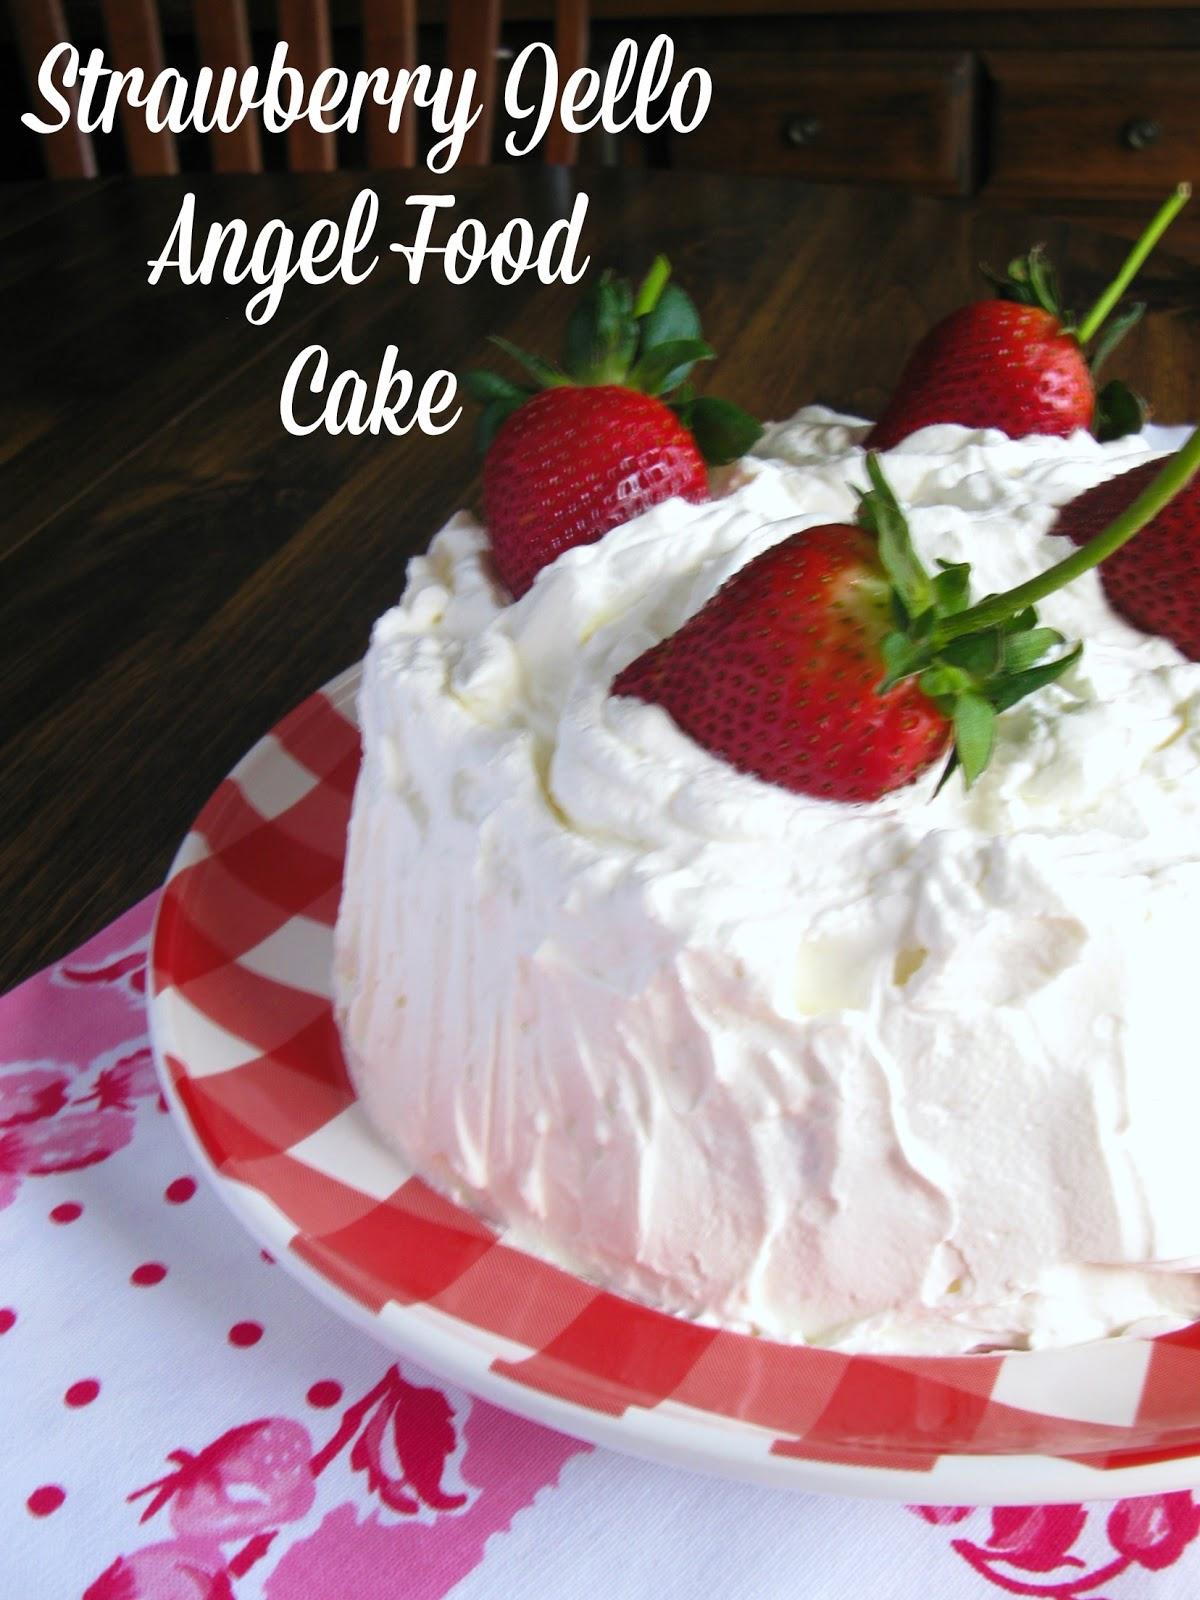 Cooking with k strawberry jello angel food cake a vintage recipe this strawberry jello angel food cake recipe is from tupperware yes they have tons of recipes using their products many that i have today forumfinder Image collections